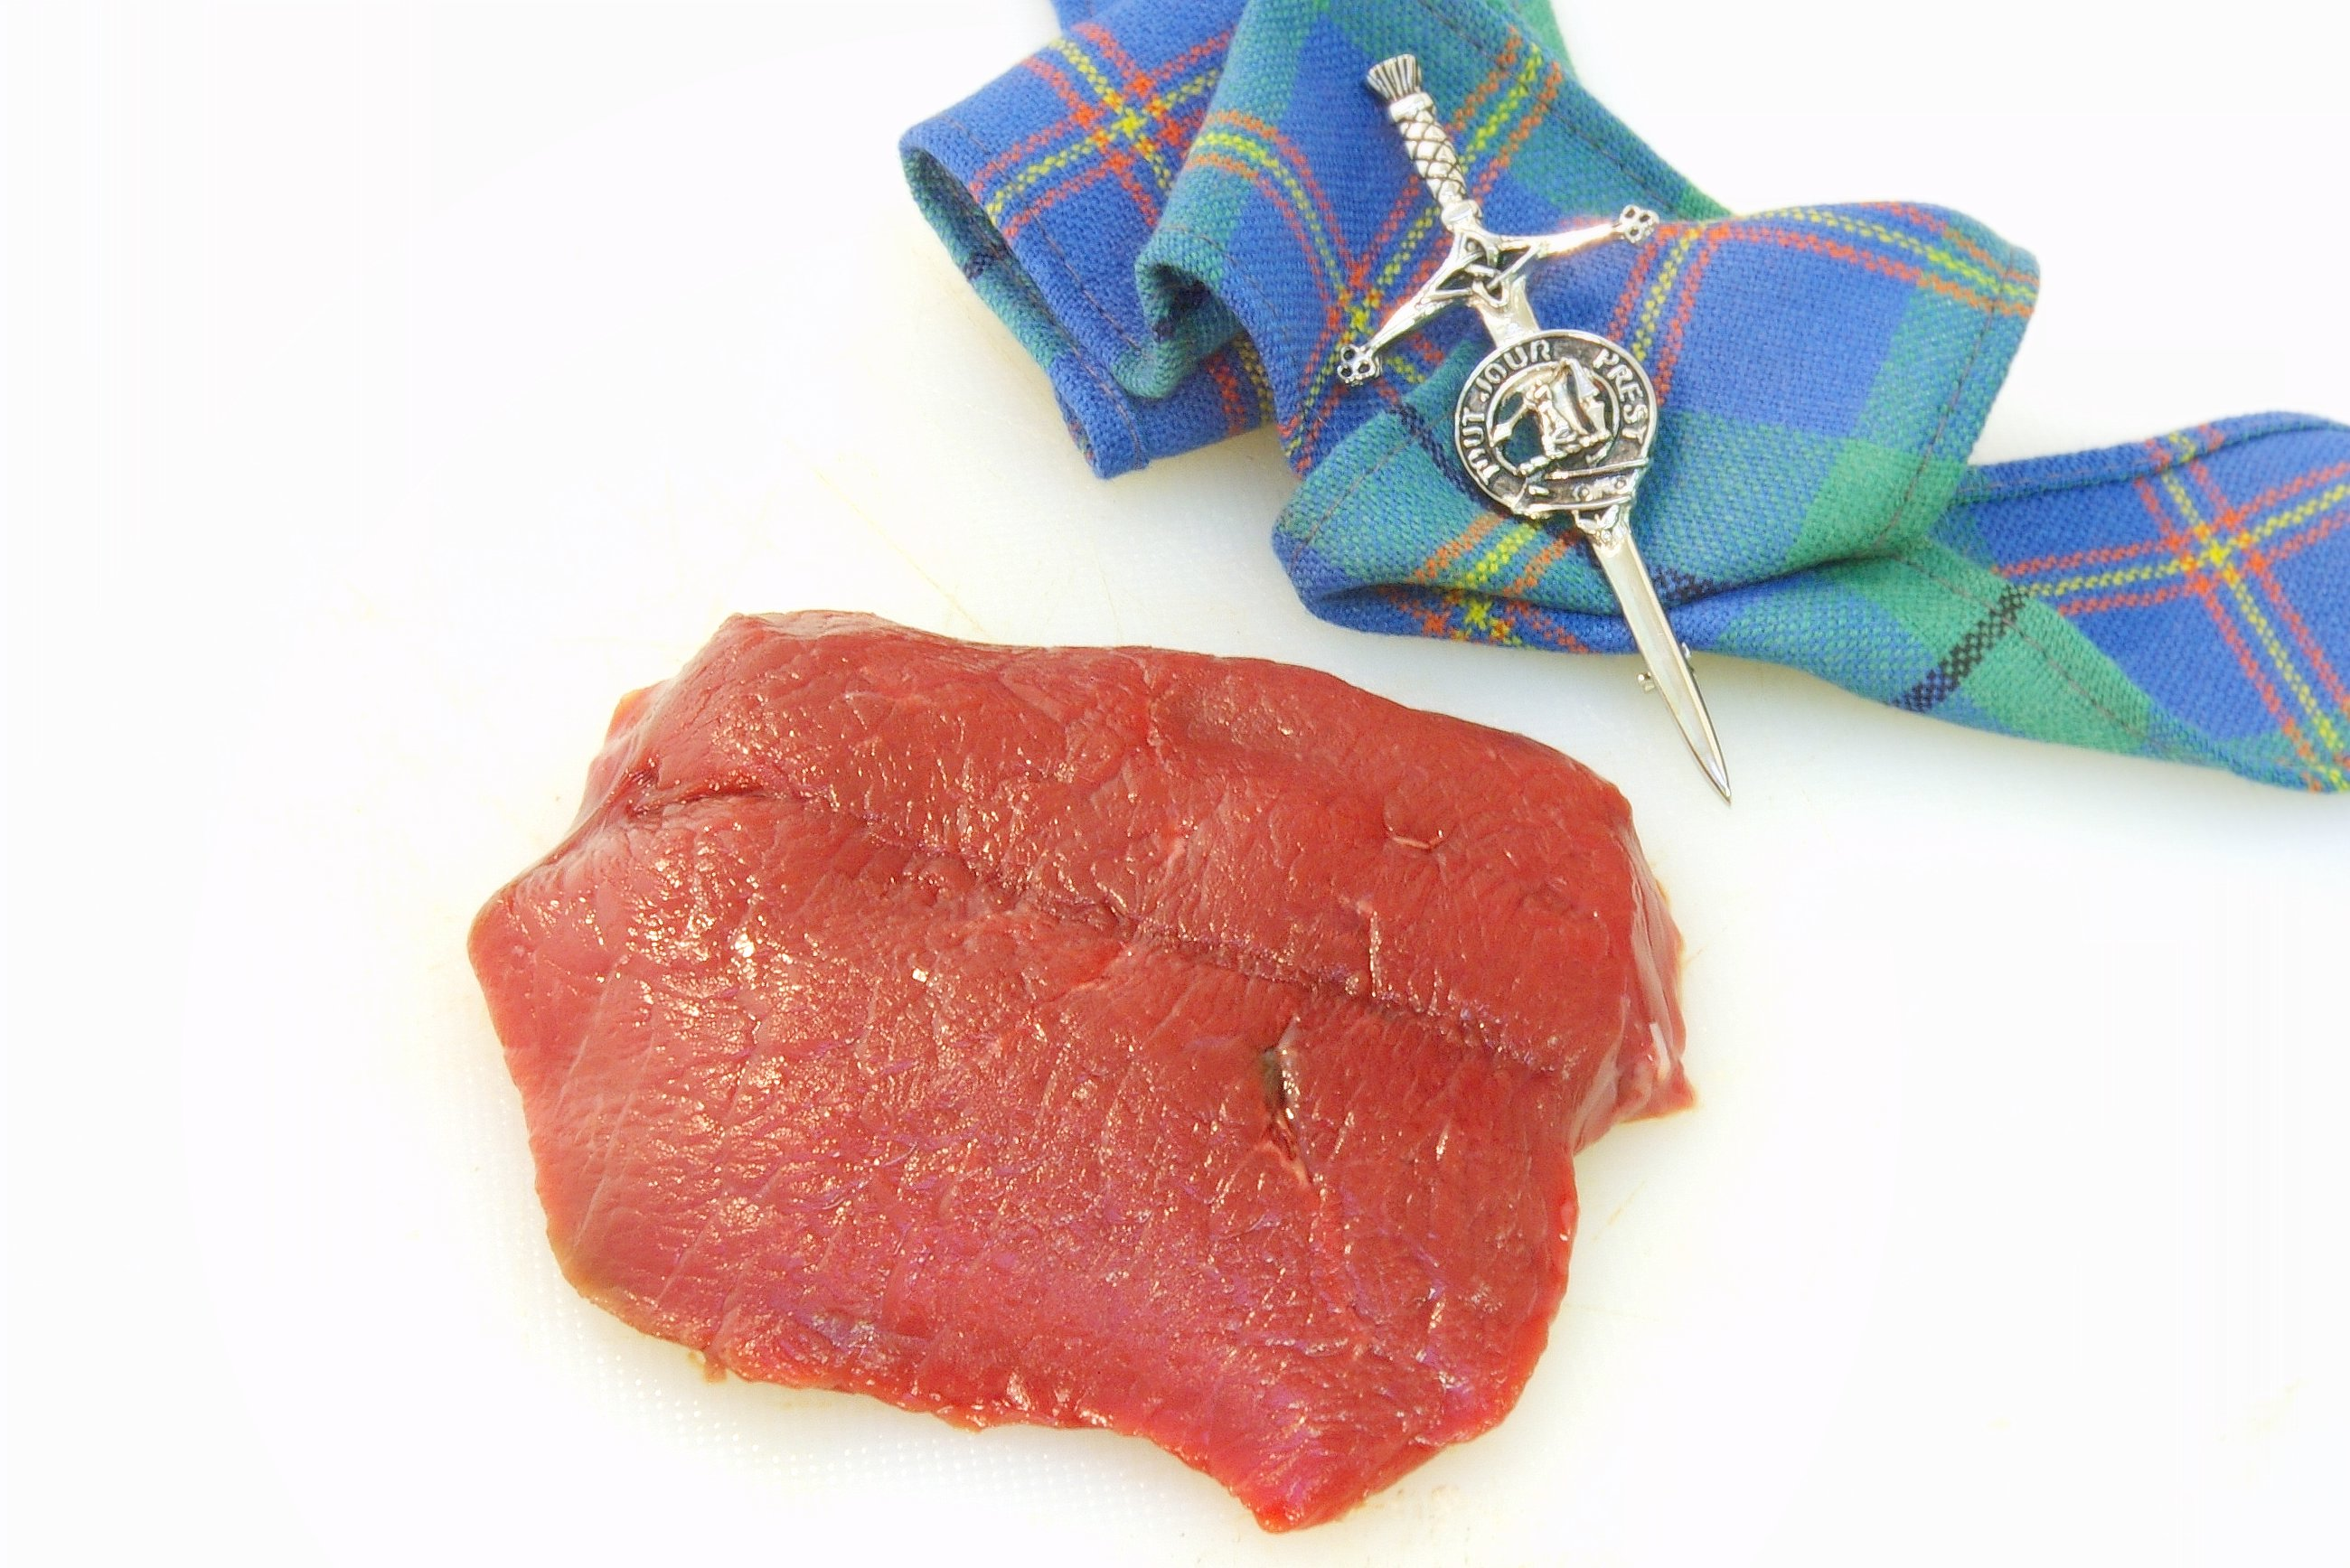 A raw venison sirlion steak